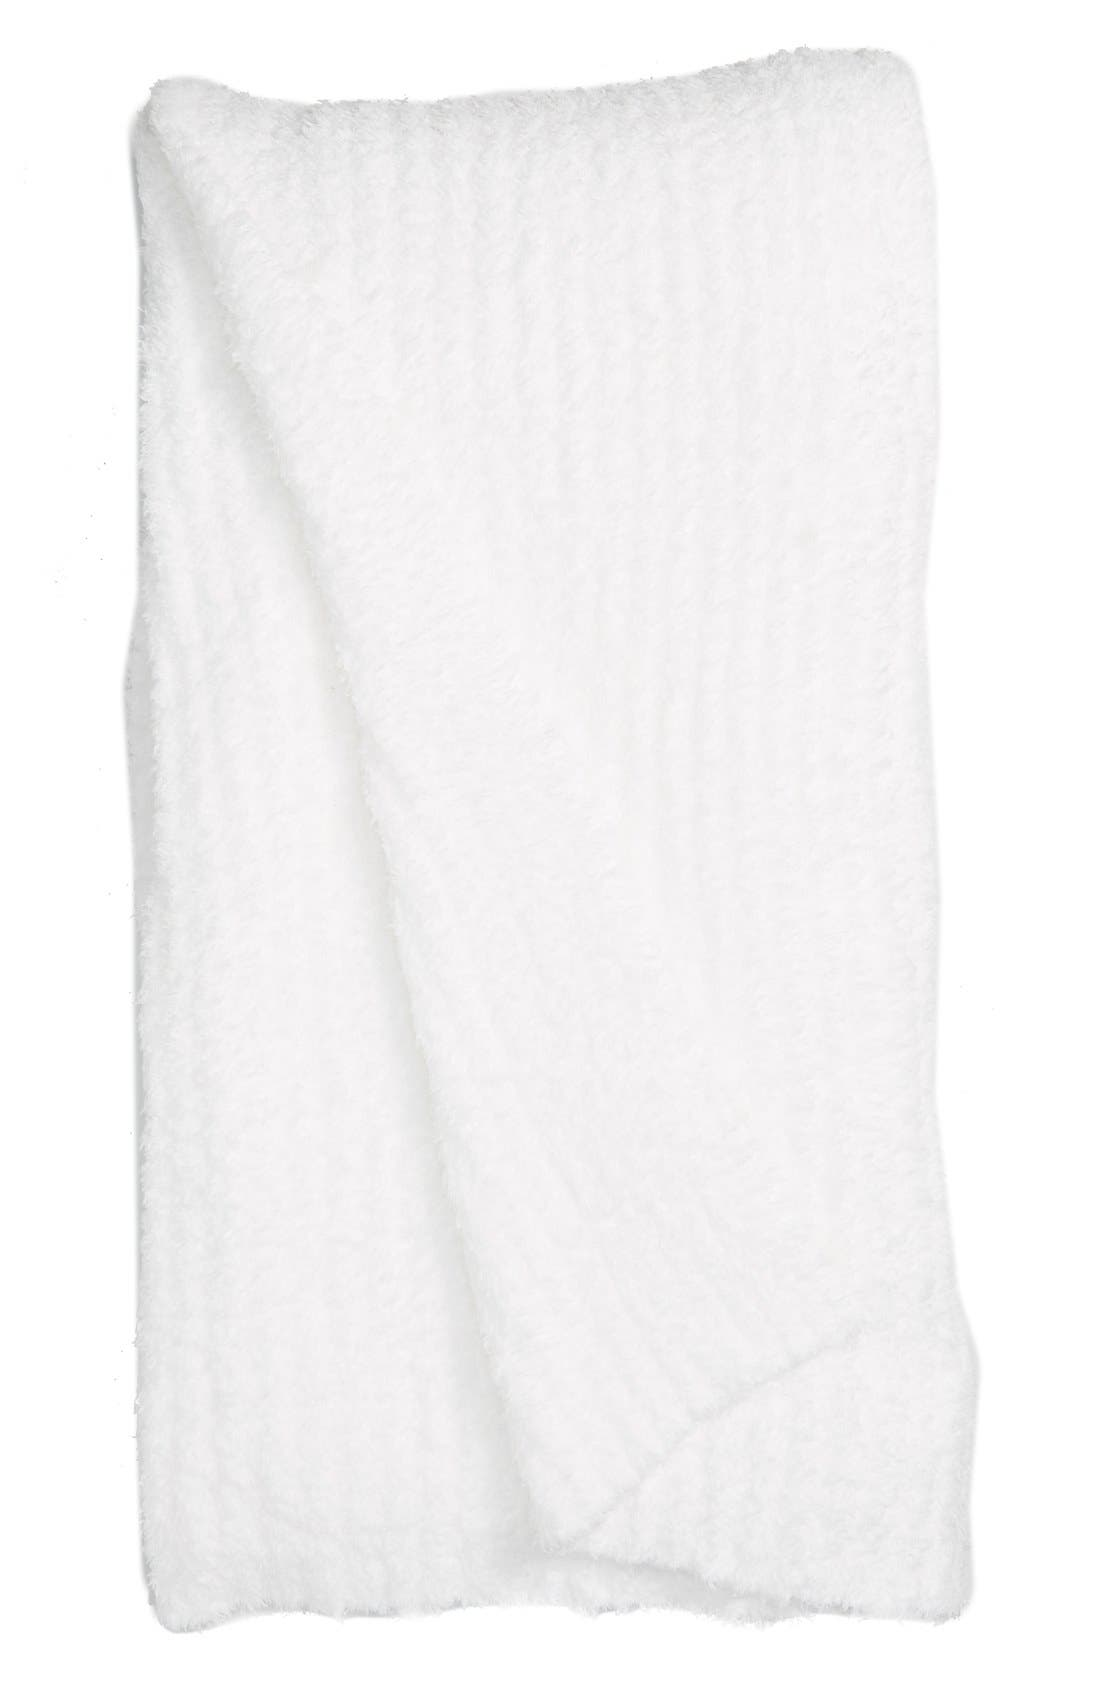 Alternate Image 1 Selected - Barefoot Dreams® 'CozyChic®' Ribbed Blanket